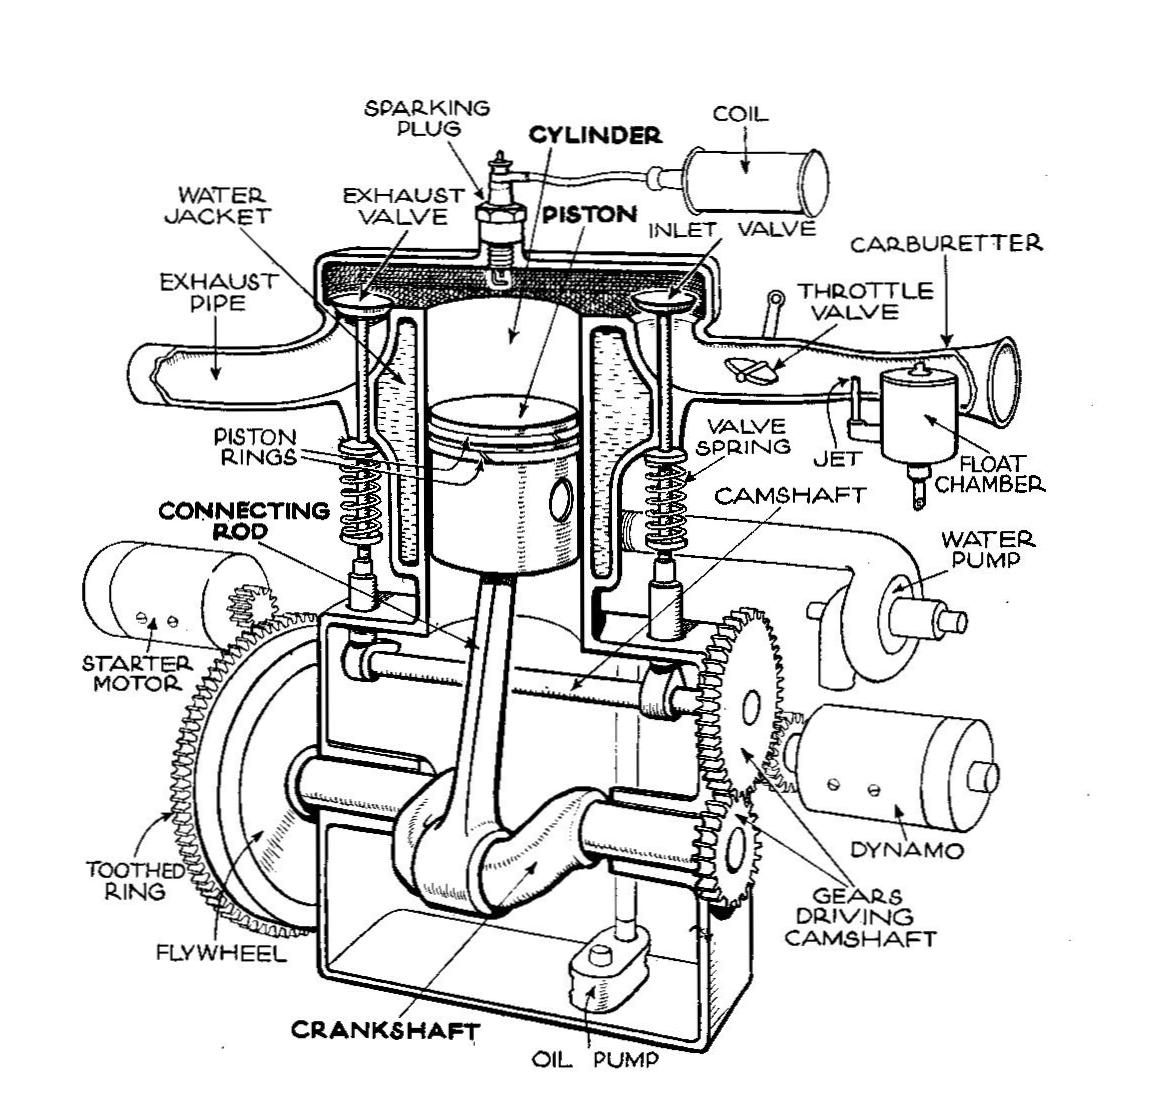 Flathead Engine Wikipedia 1974 Bmw 2002 Diagram